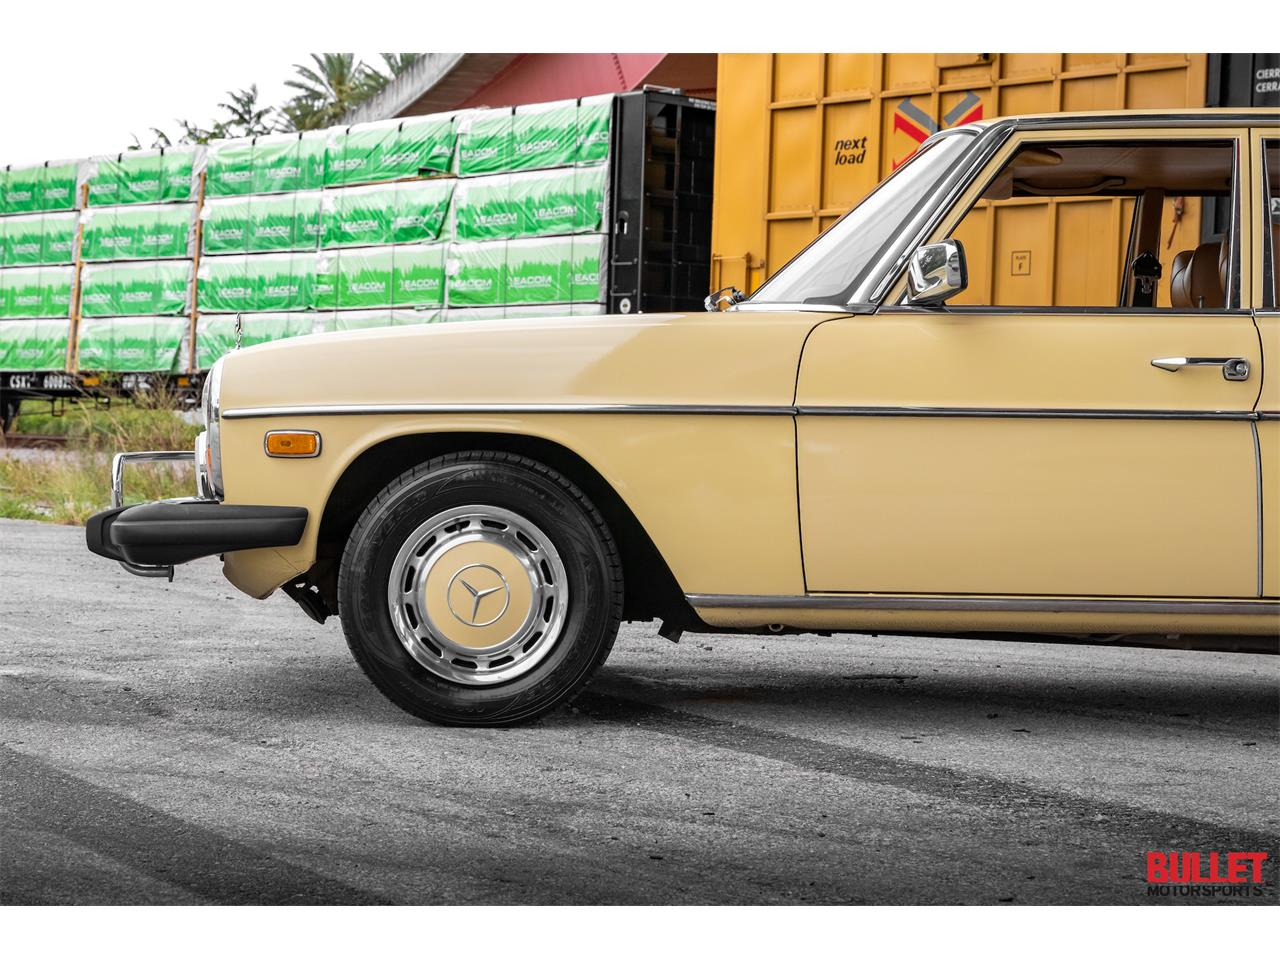 Large Picture of 1976 Mercedes-Benz 300D - $9,000.00 Offered by Bullet Motorsports Inc - PXPA